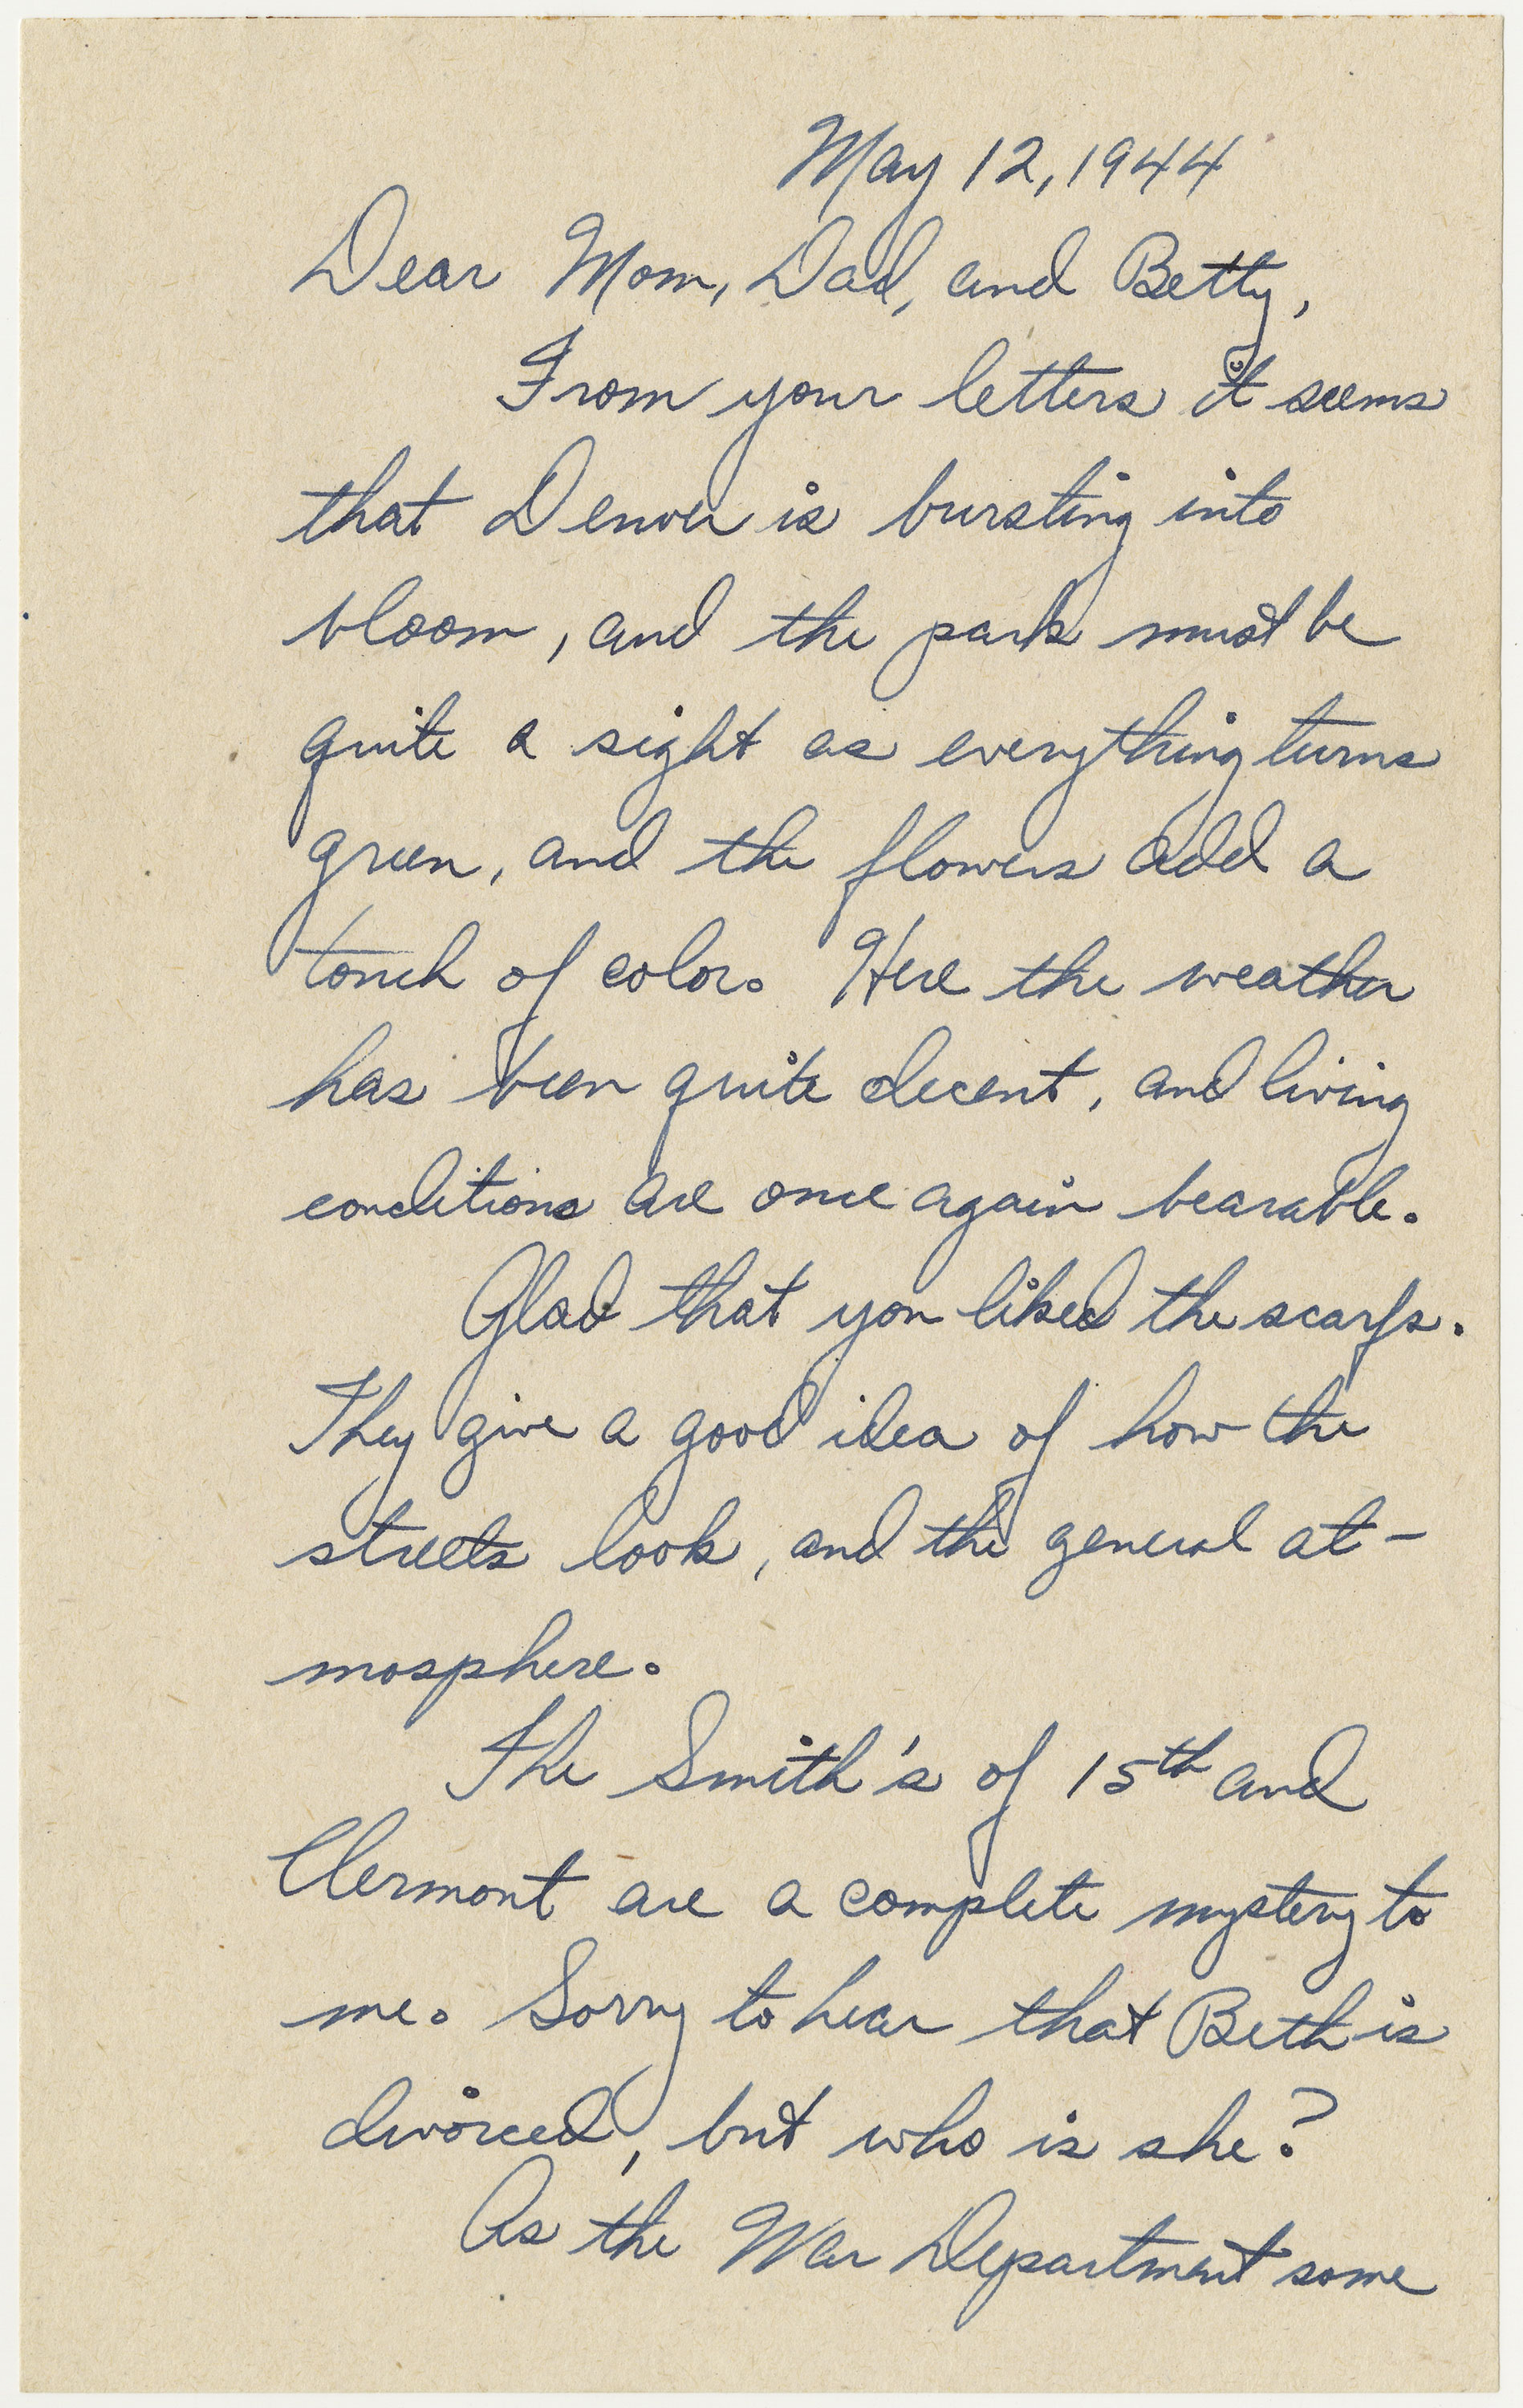 page 1 of letter written by Bischoff on May 12, 1944